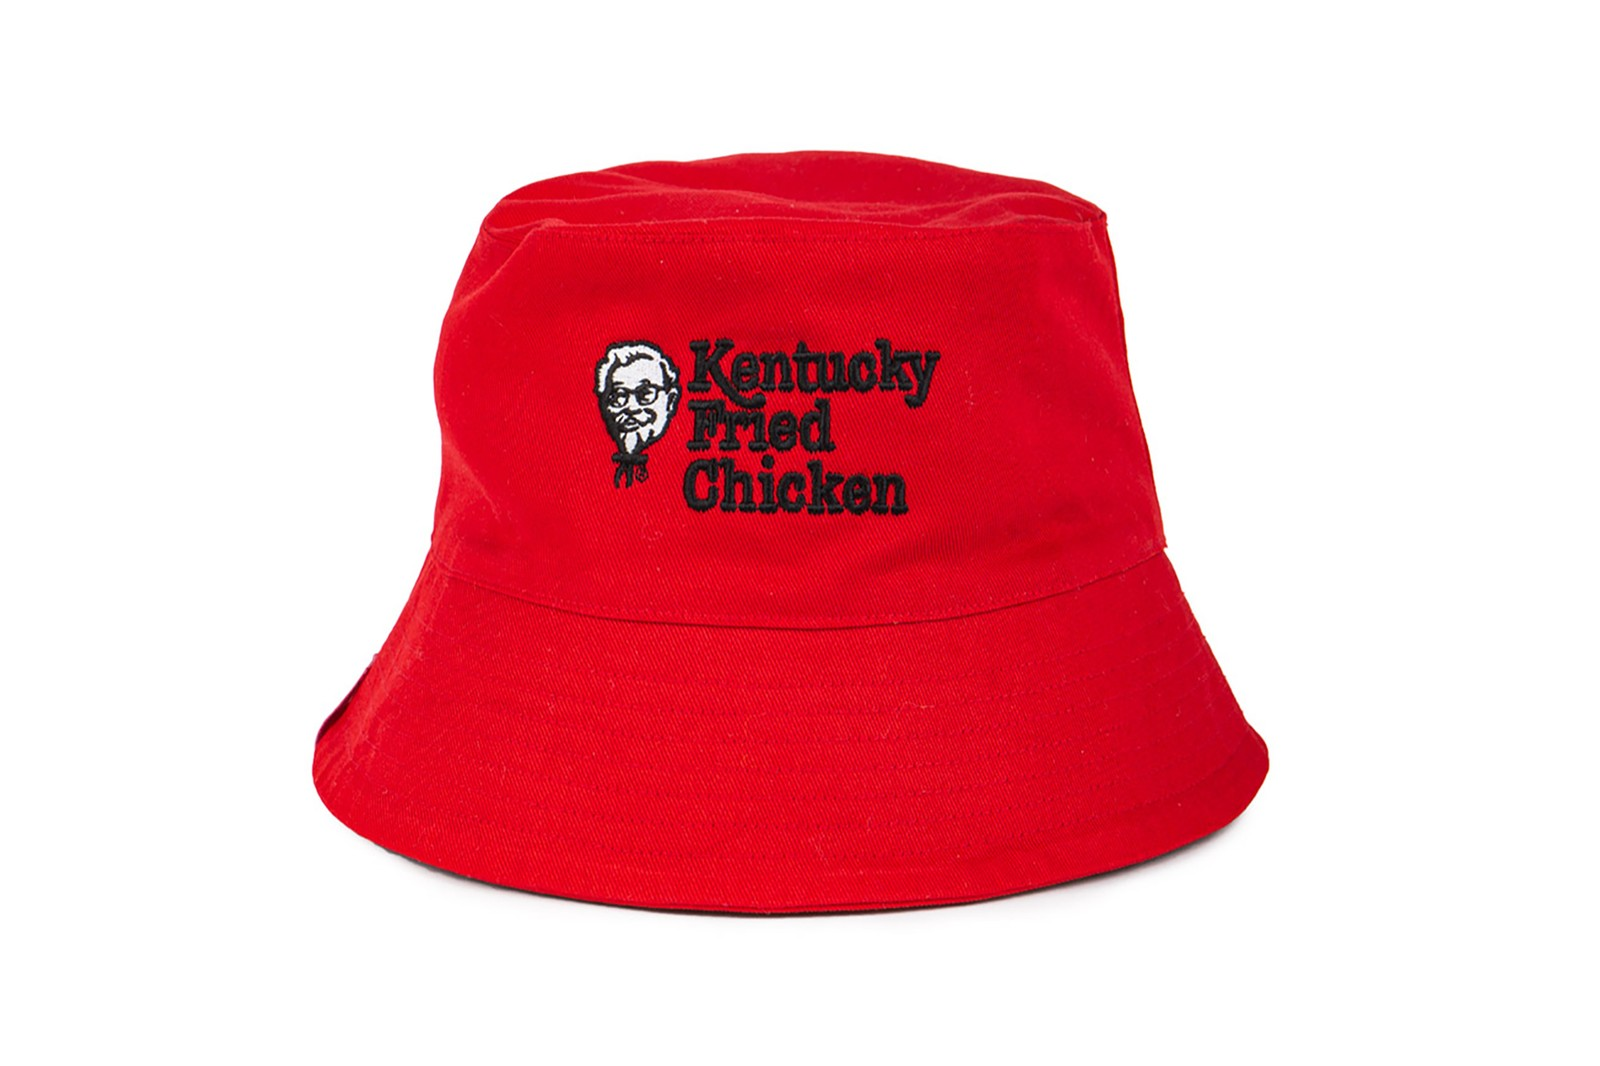 kfc bucket hat kentucky fried chicken foundation comic relief red nose day charity donation uk united kingdom ireland red white